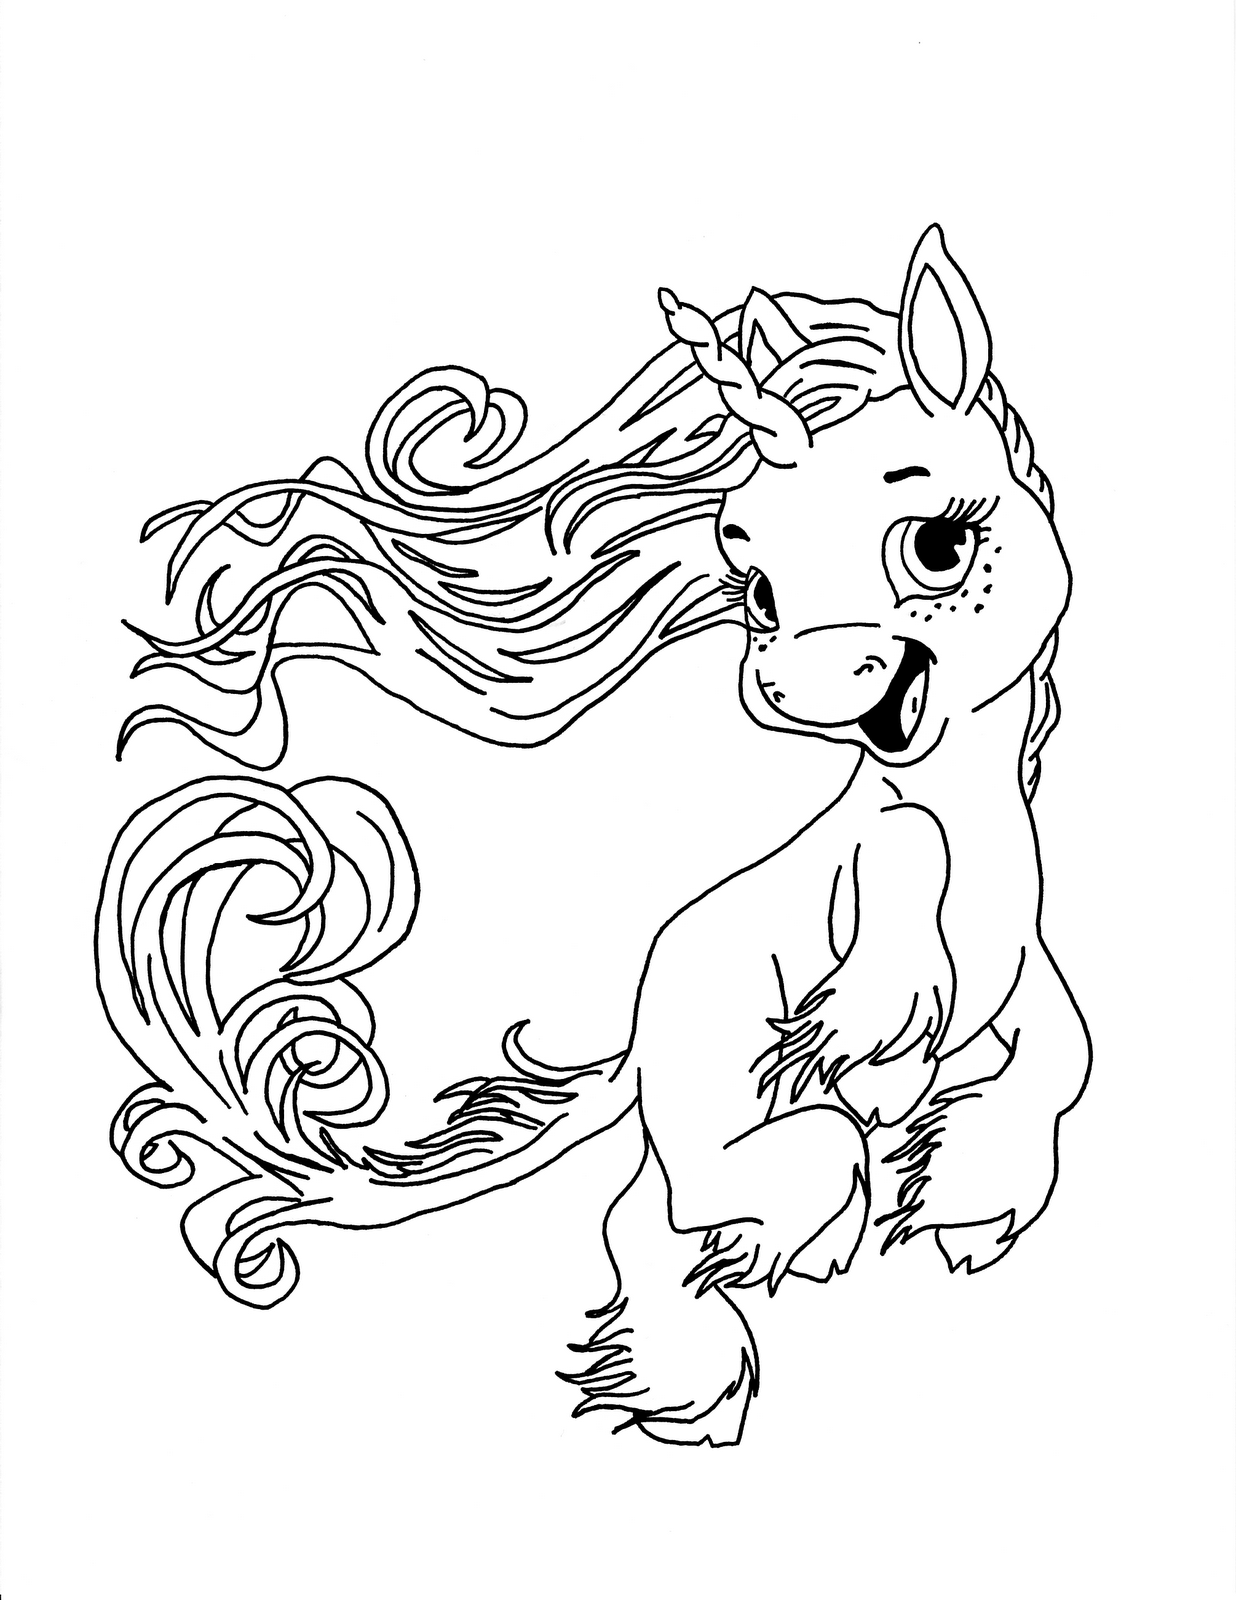 2016-unicorn-fairy-tales-coloring-pages-printable-art-sheets